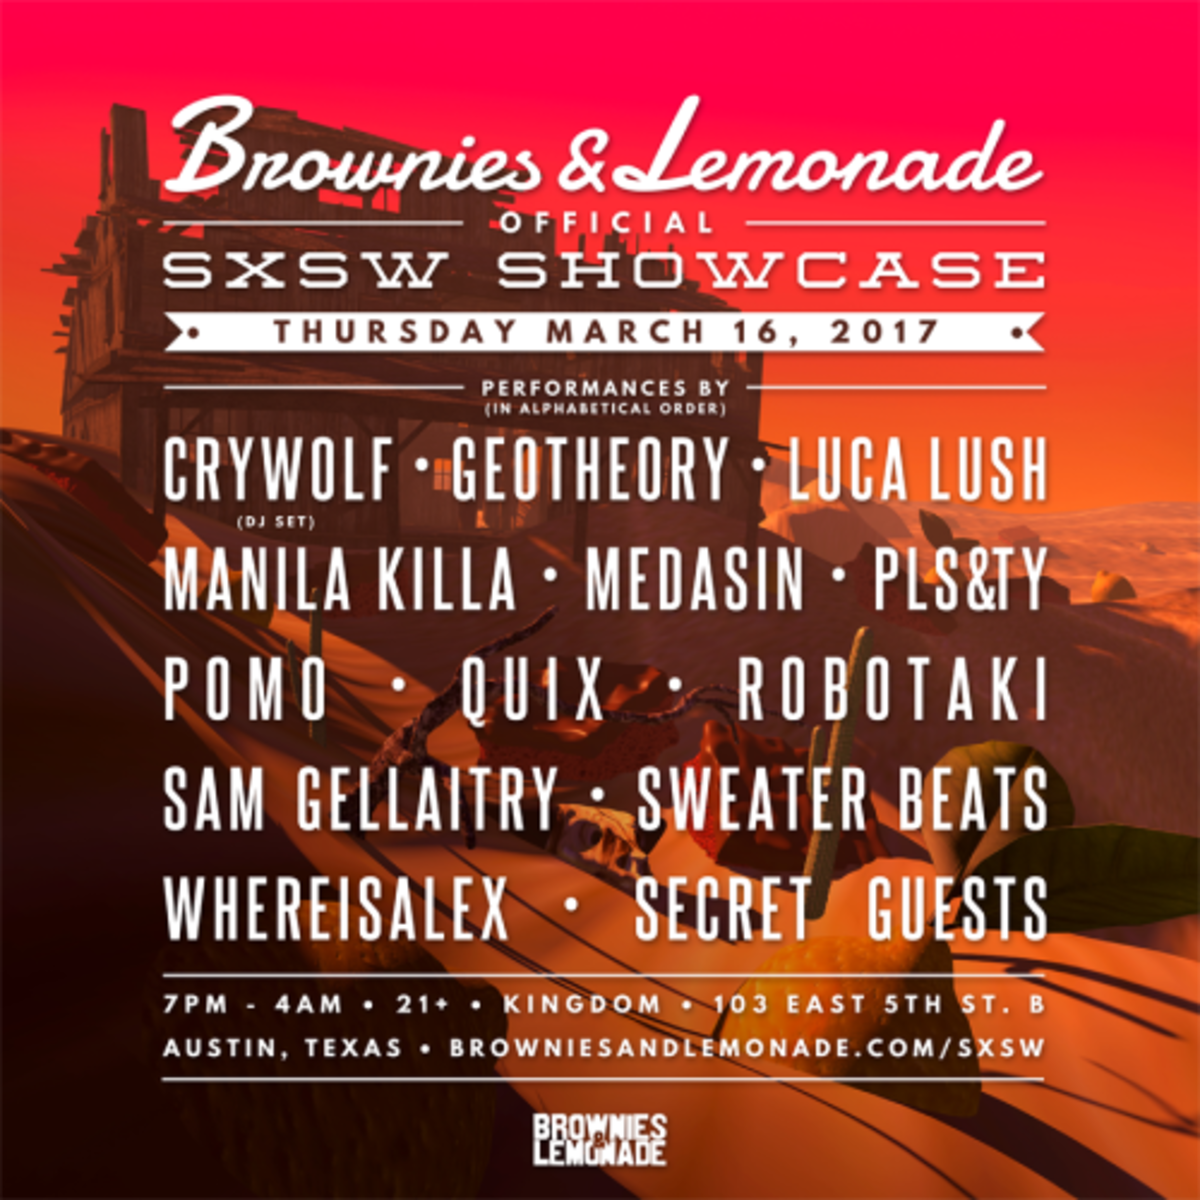 More information about their sxsw event can be found here.